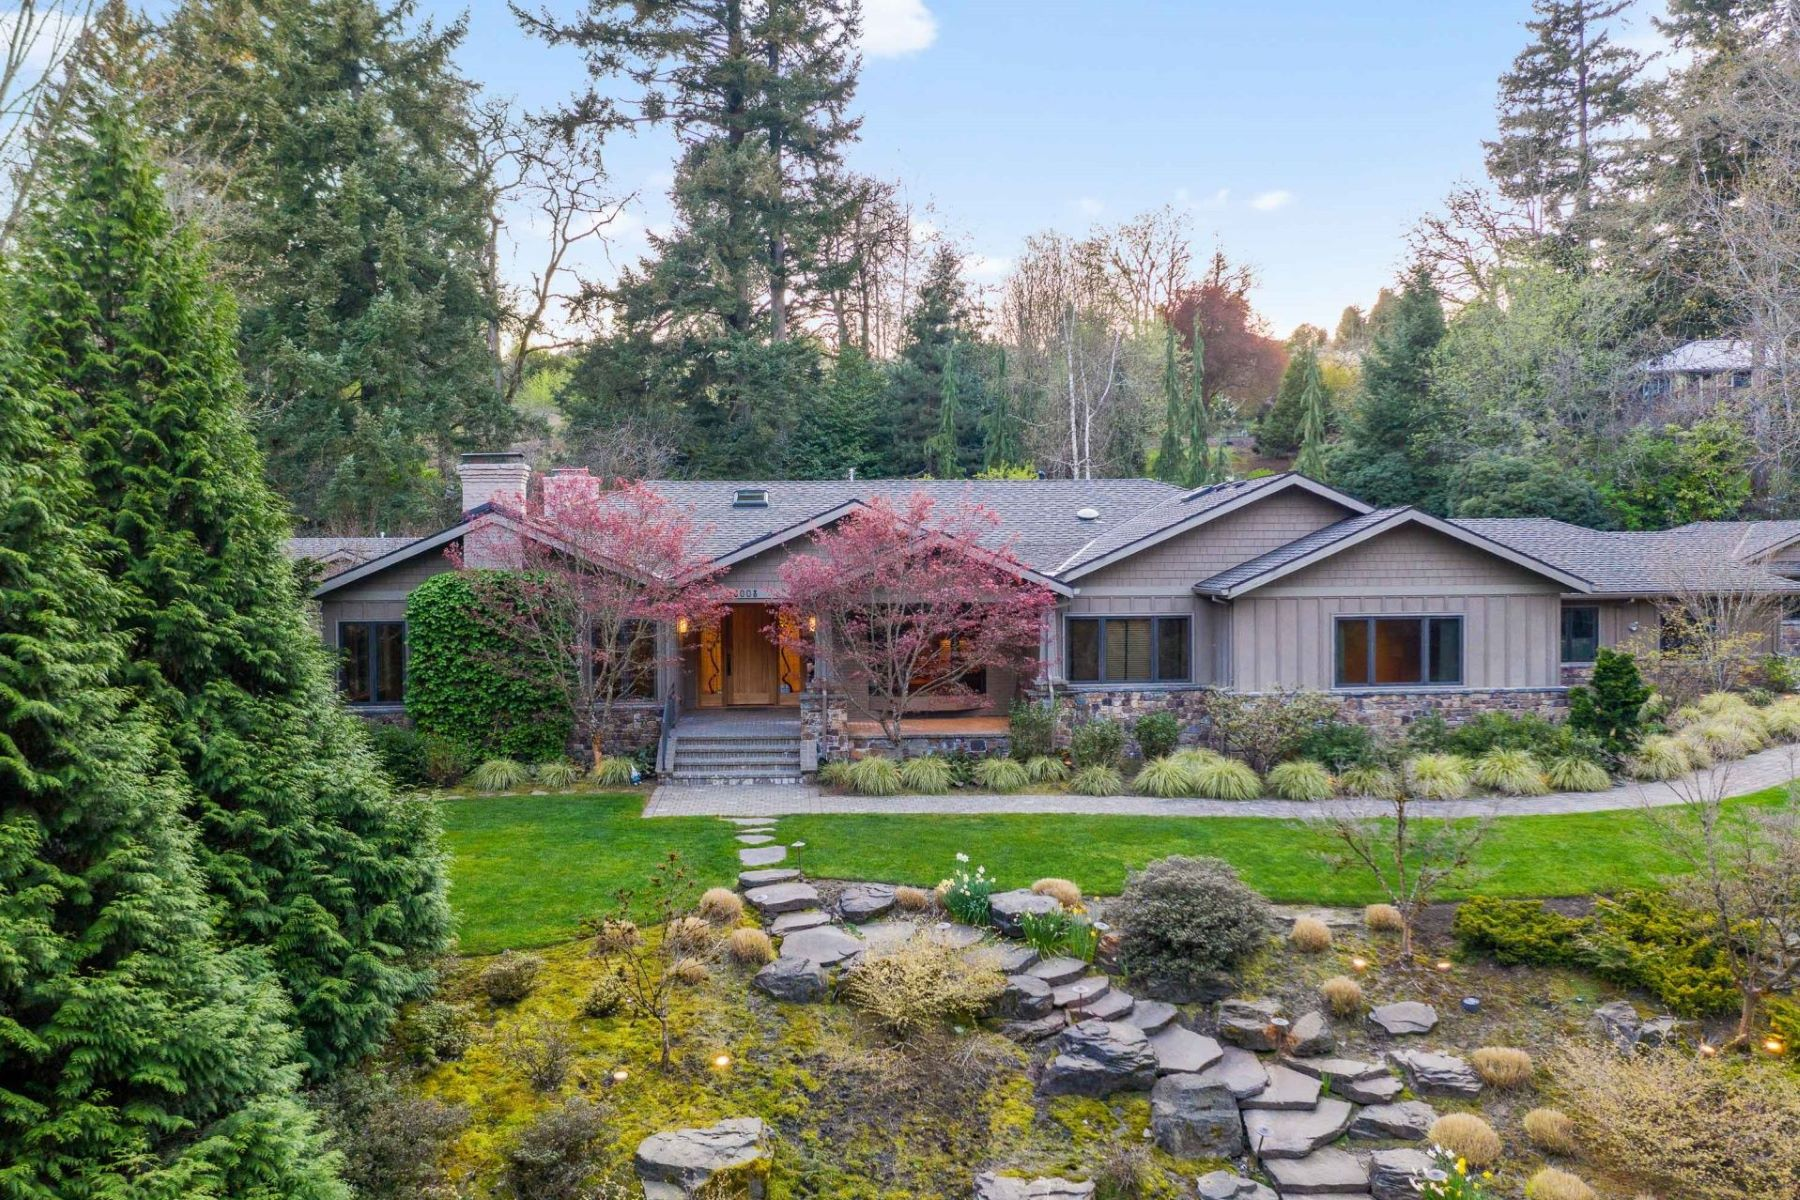 Other Residential Homes for Active at 18008 GREENBLUFF DR Lake Oswego, OR 97034 18008 GREENBLUFF DR Lake Oswego, Oregon 97034 United States